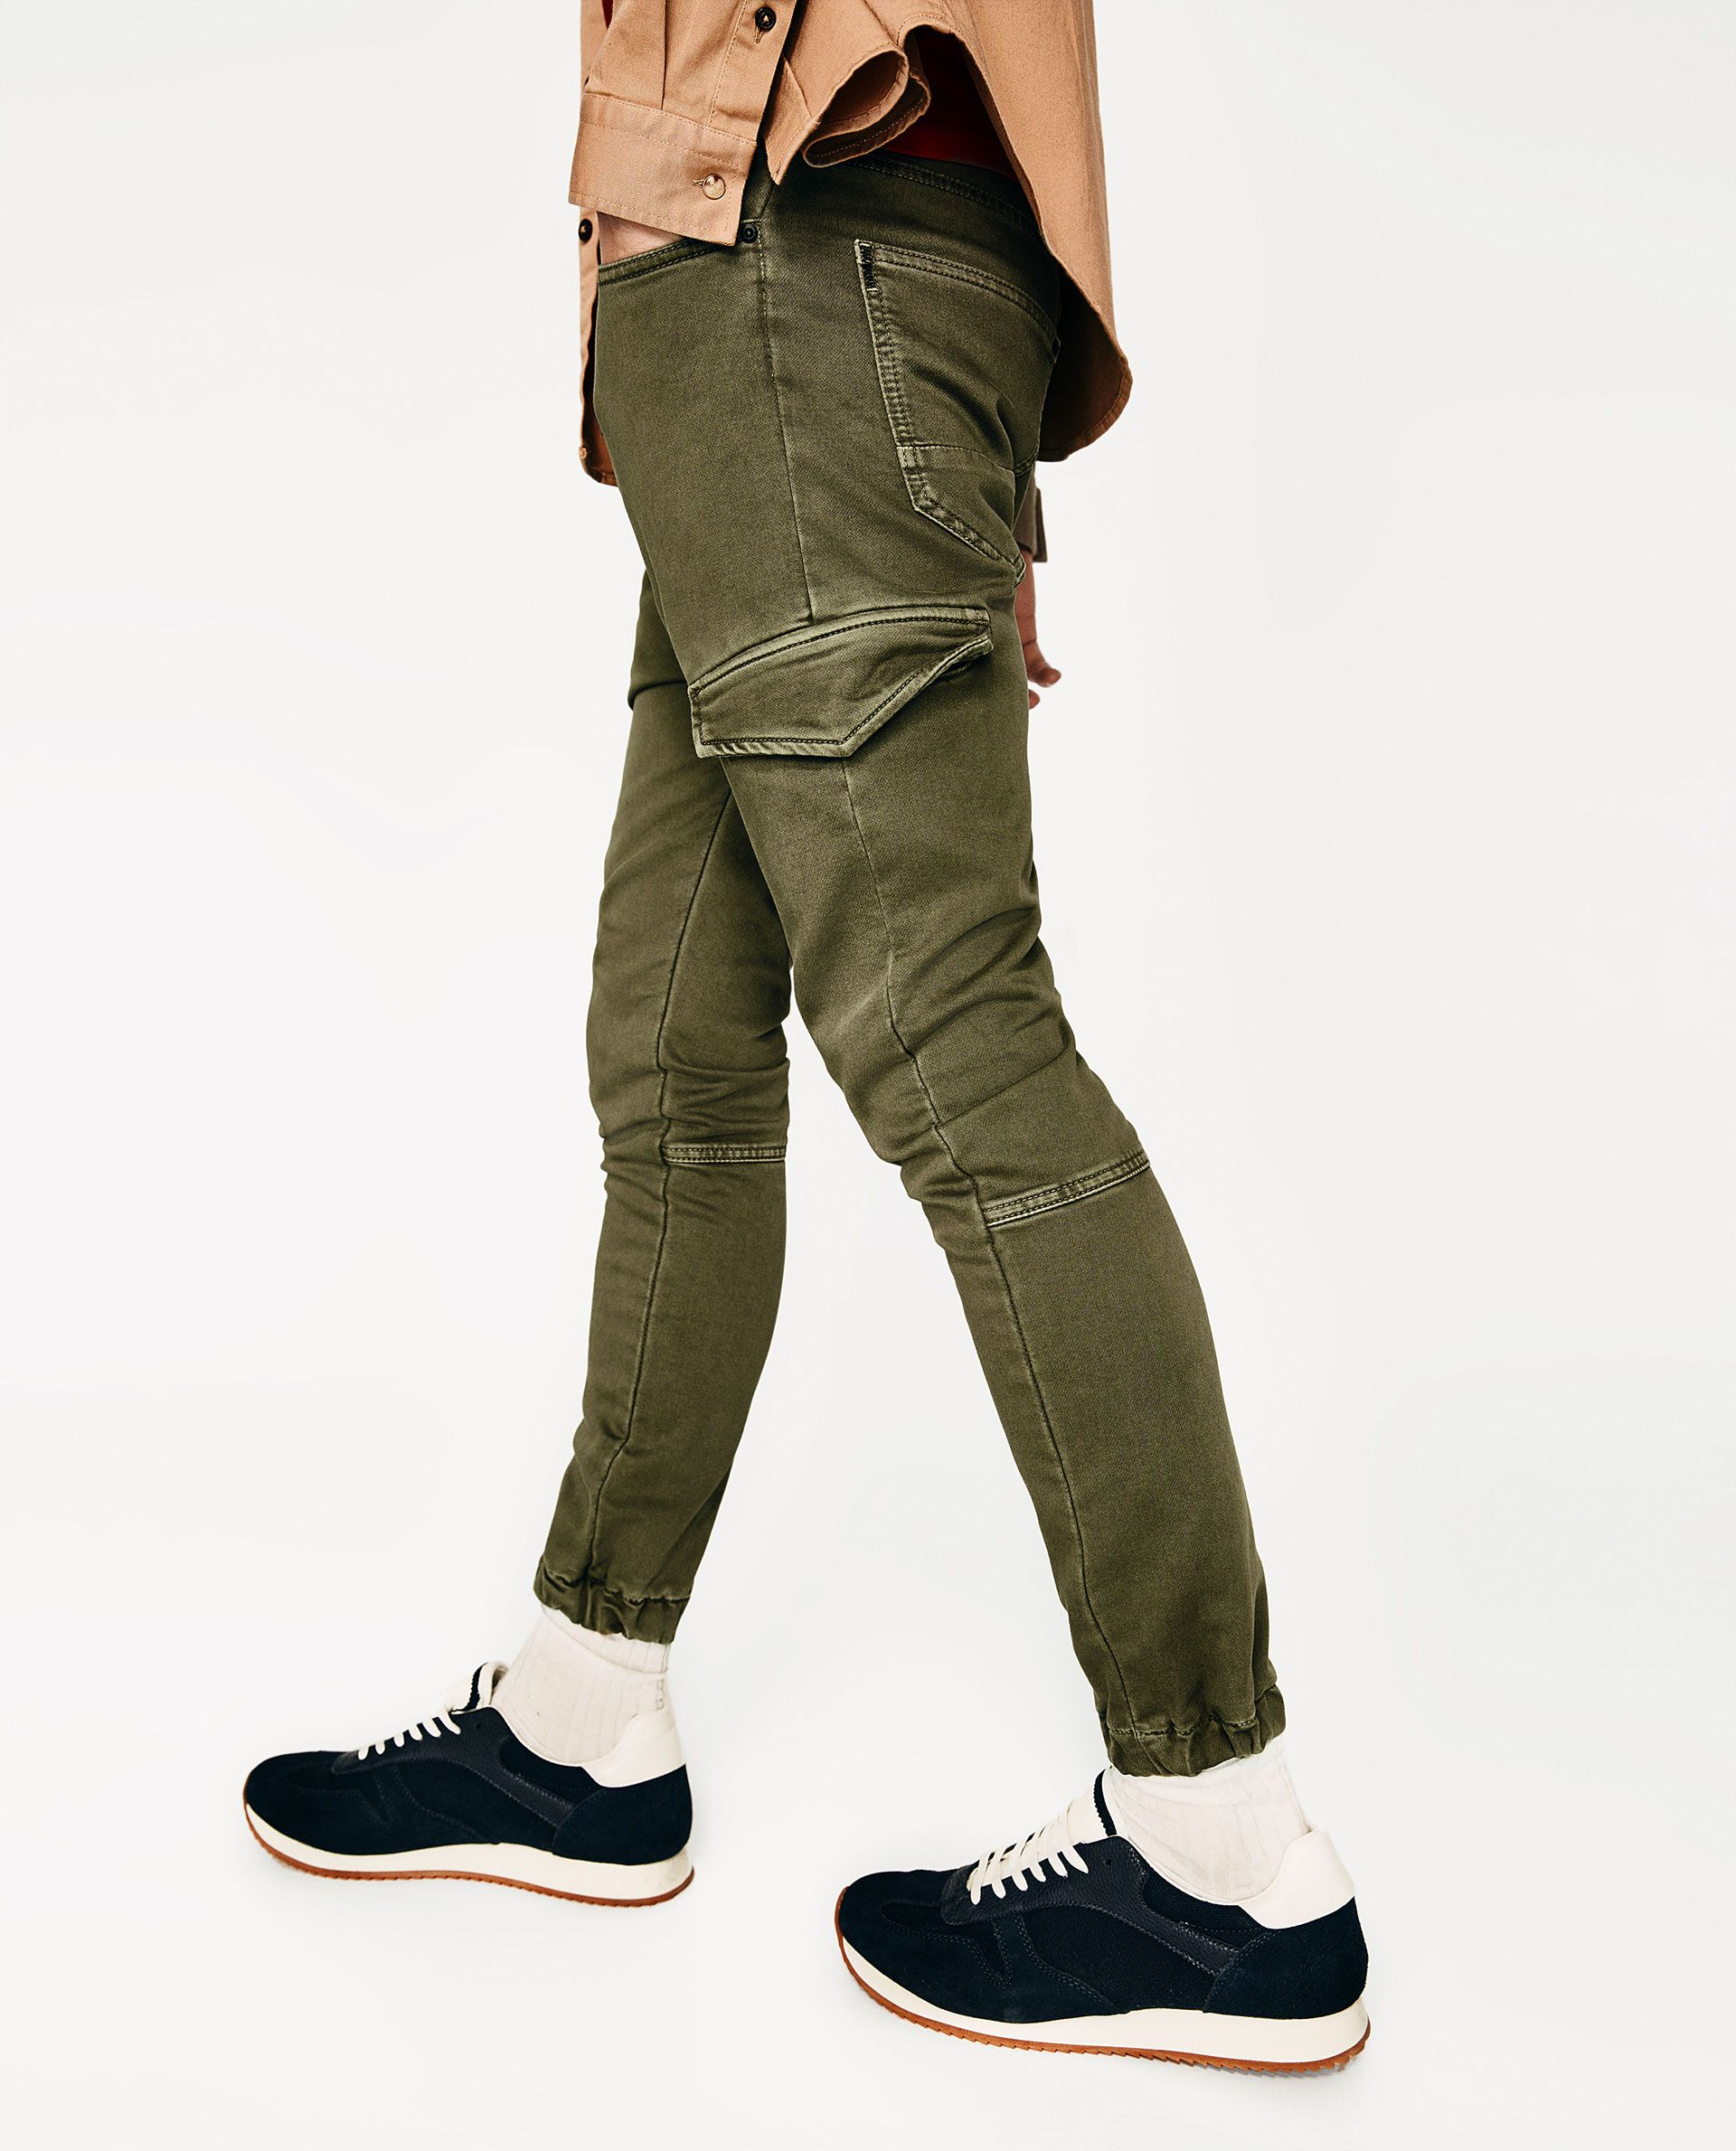 fad1e154b5 SOFT CARGO TROUSERS | CARGO JOGGER in 2019 | Trousers, Sweatpants, Pants